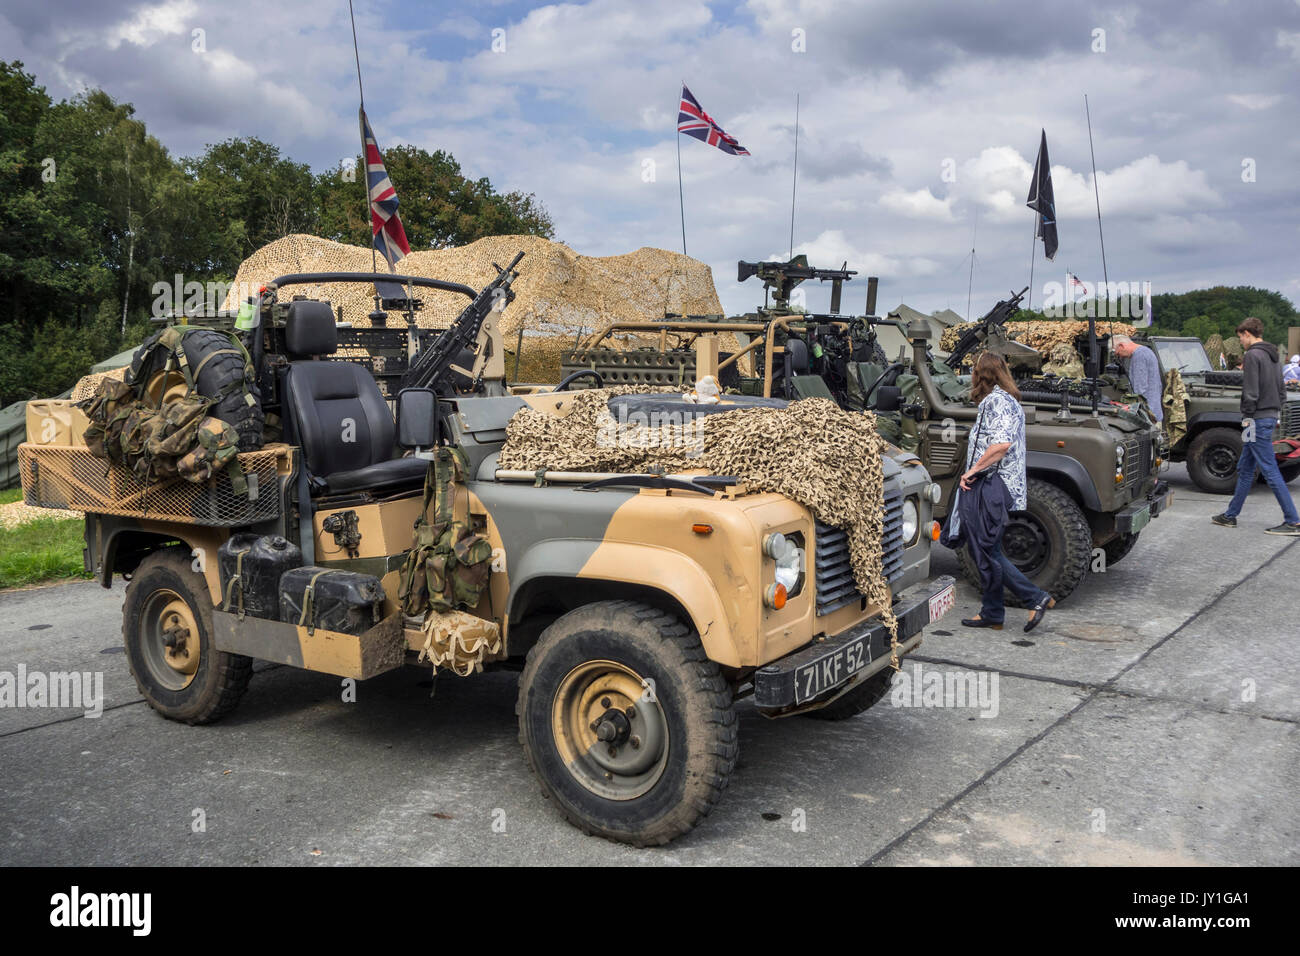 land rover military british stock photos land rover. Black Bedroom Furniture Sets. Home Design Ideas